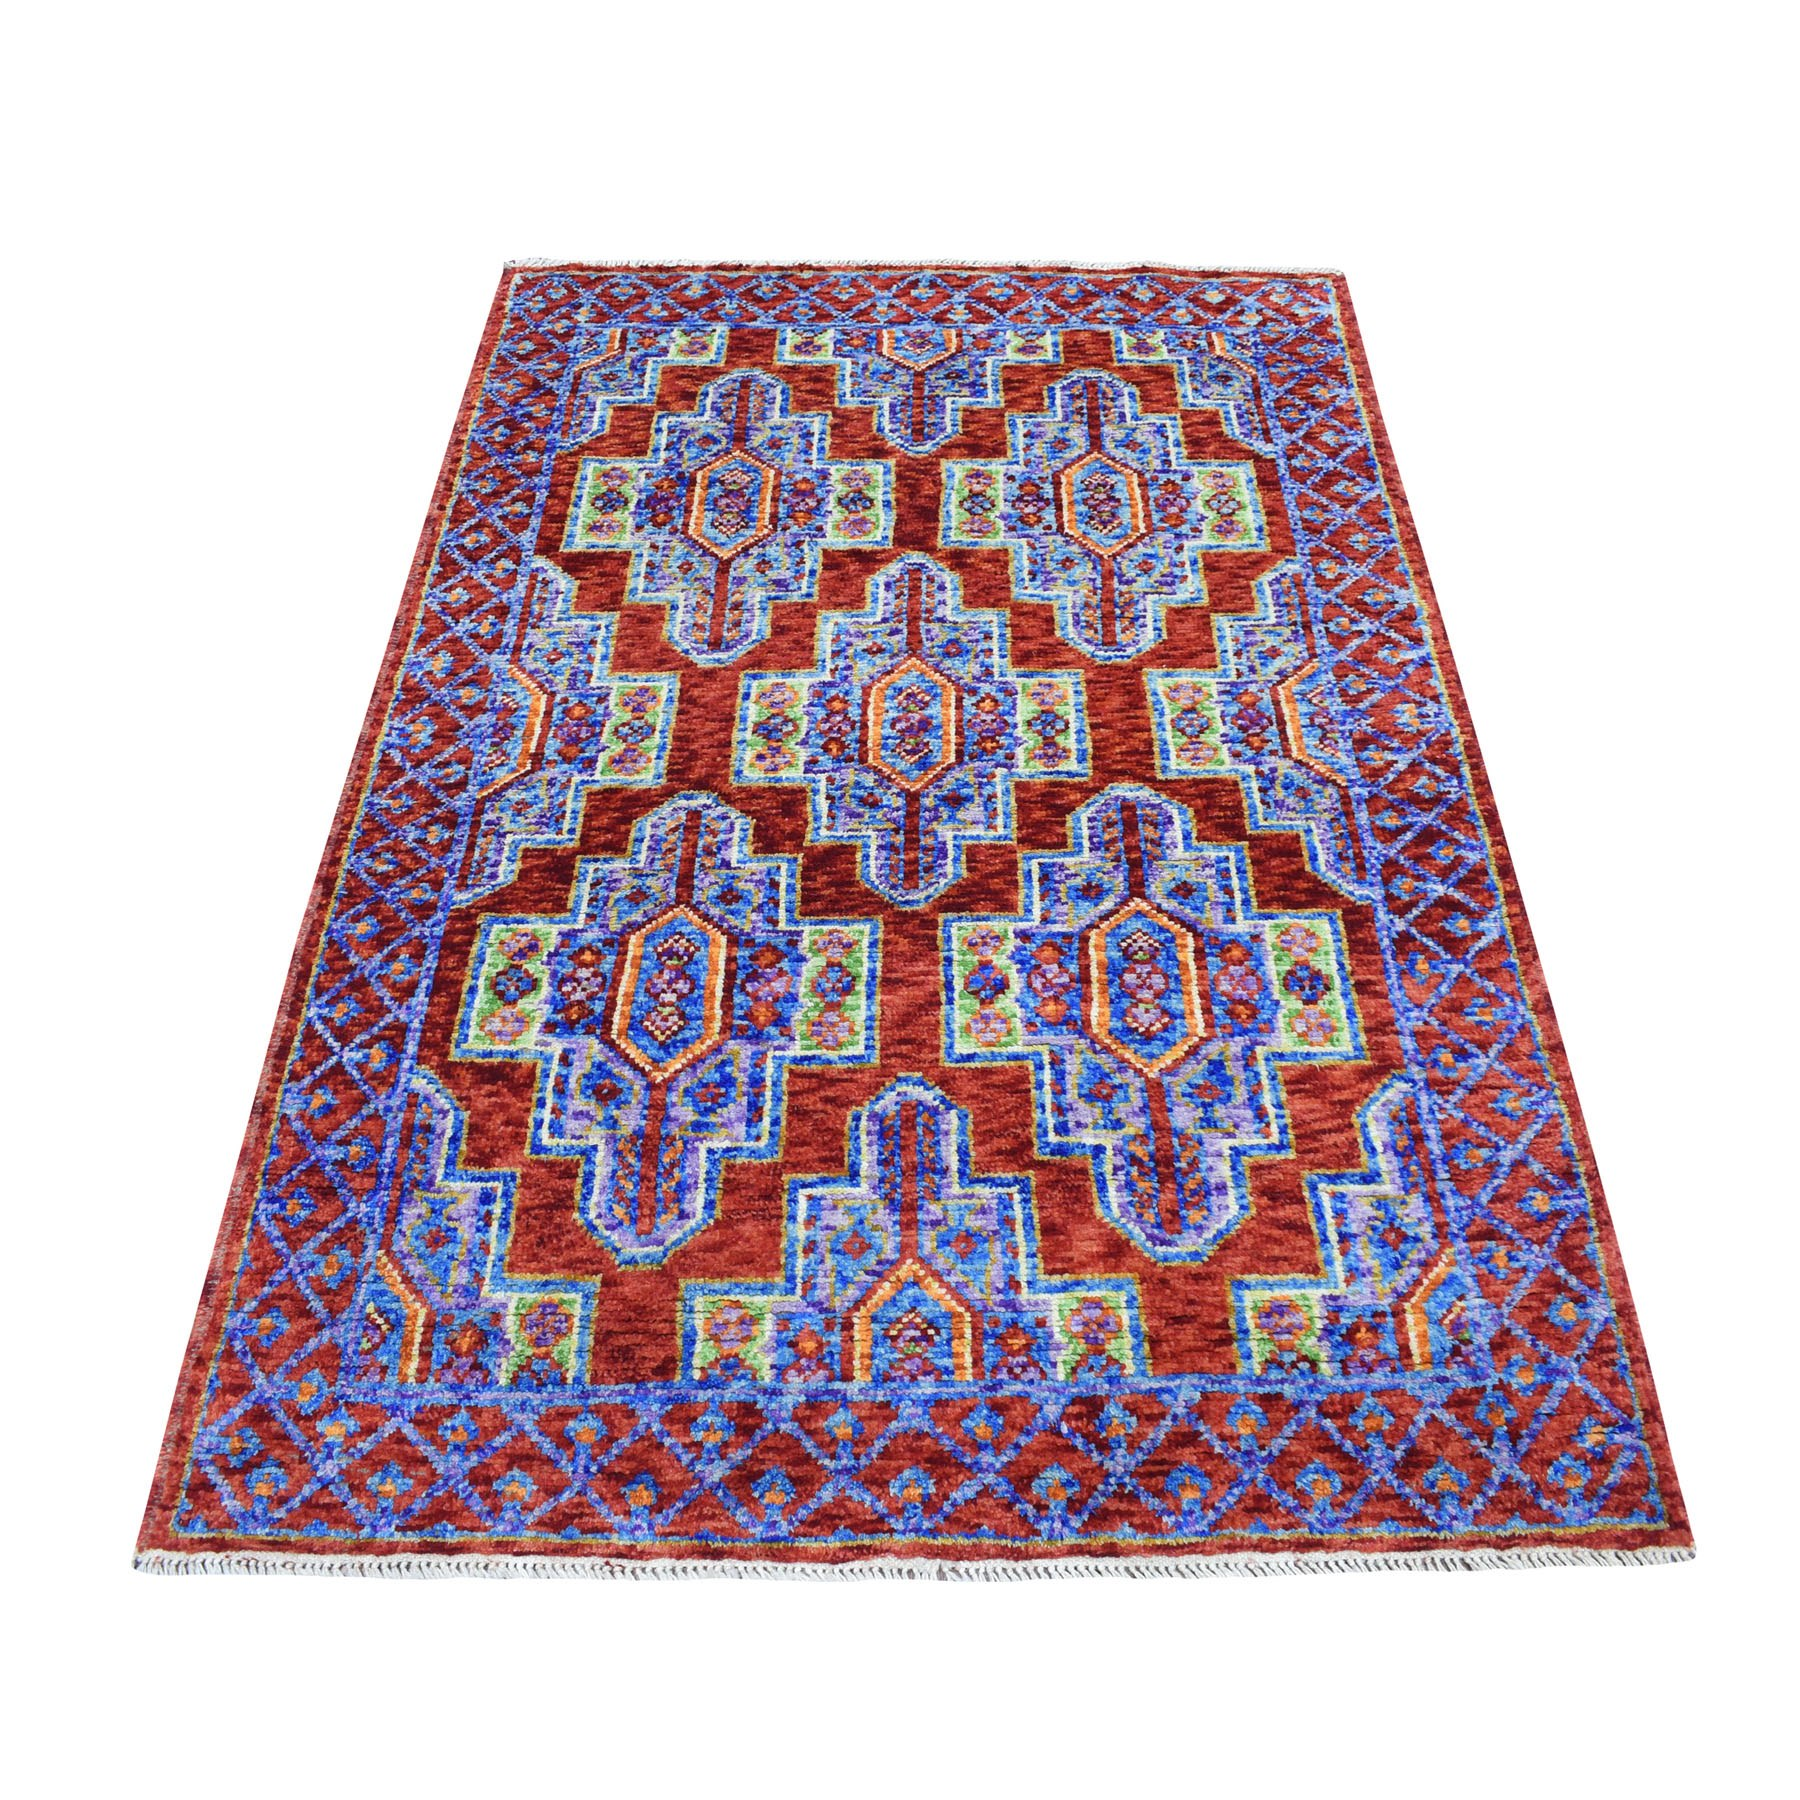 4'x6' Colorful Afghan Baluch Geometric Design Natural Dyes 100% Wool Hand Knotted Oriental Rug